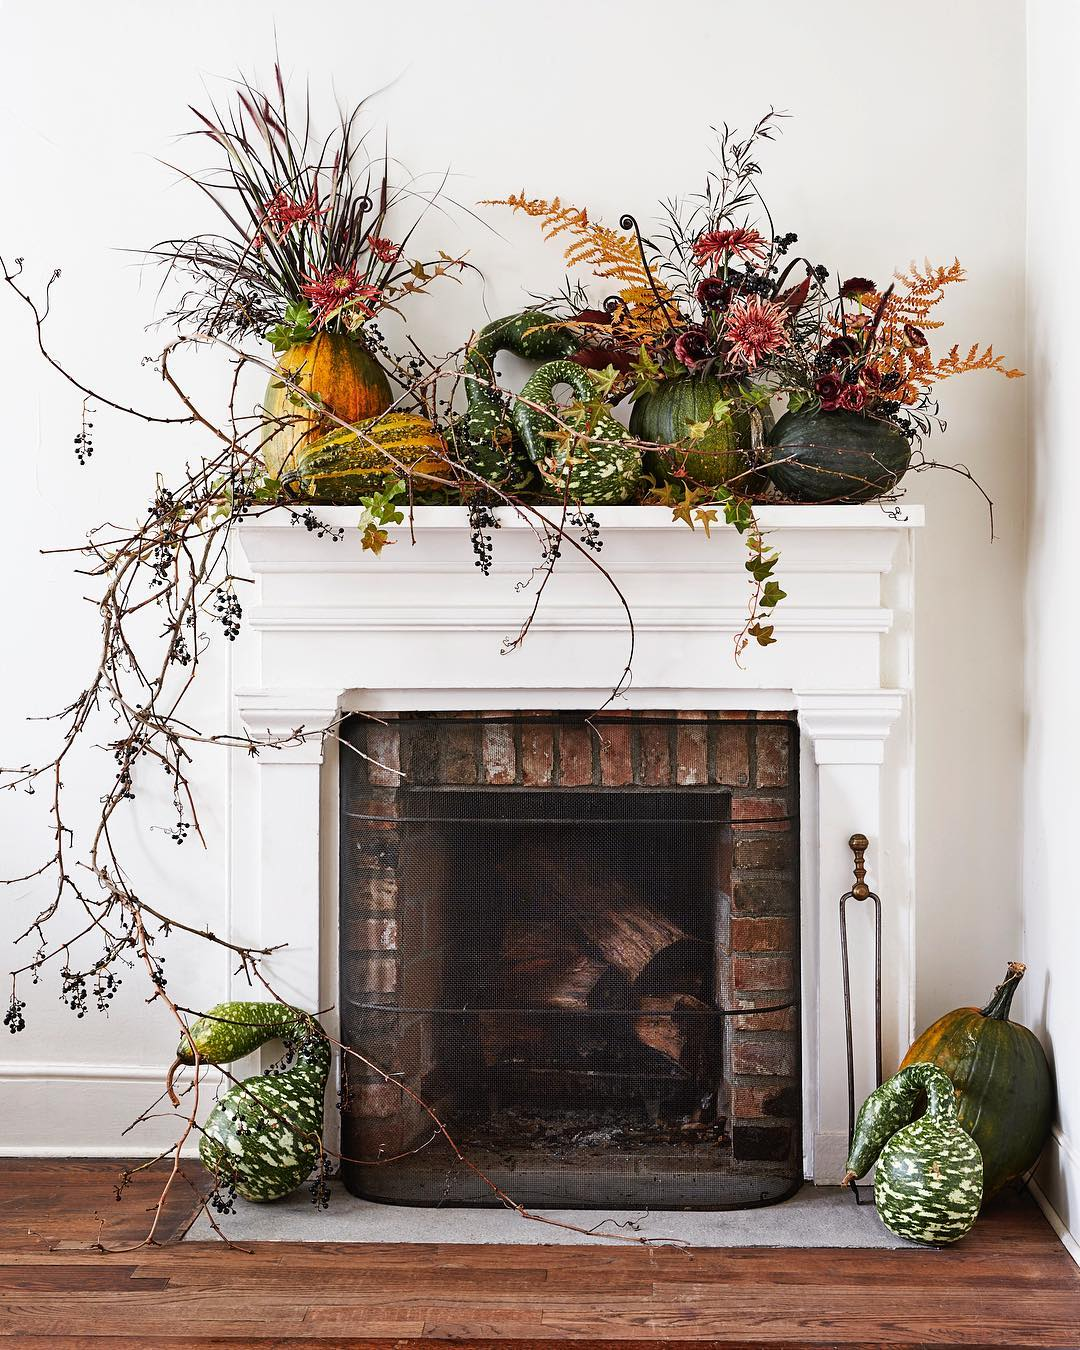 Putnam & Putnam's decorative mantel in this month's issue of Martha Stewart Living. Image courtesy of Putnam & Putnam's Instagram